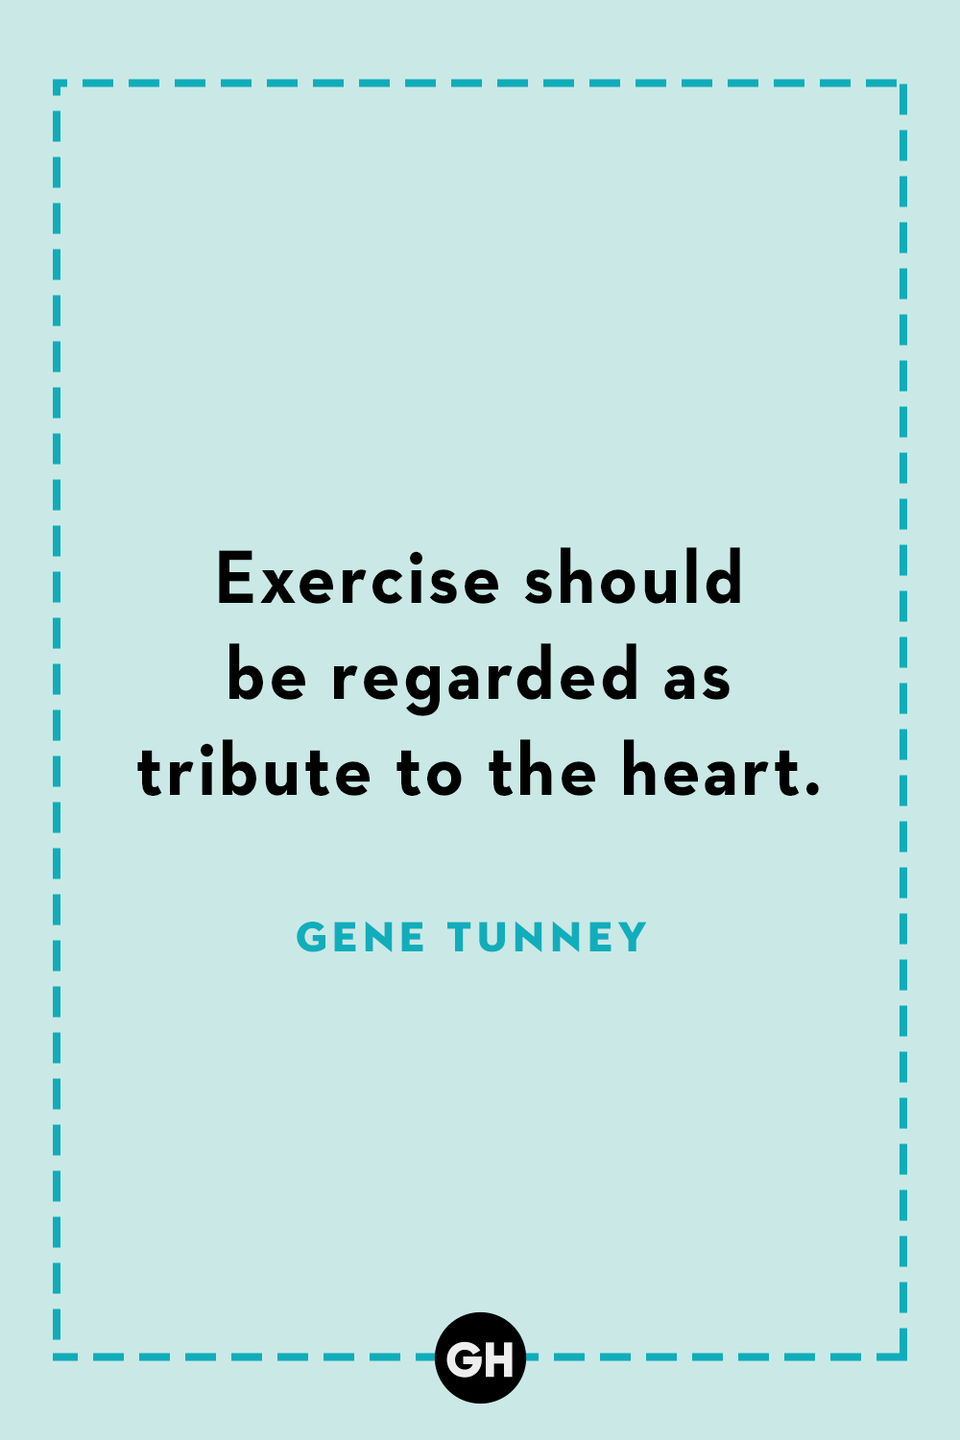 <p>Exercise should be regarded as tribute to the heart.</p>